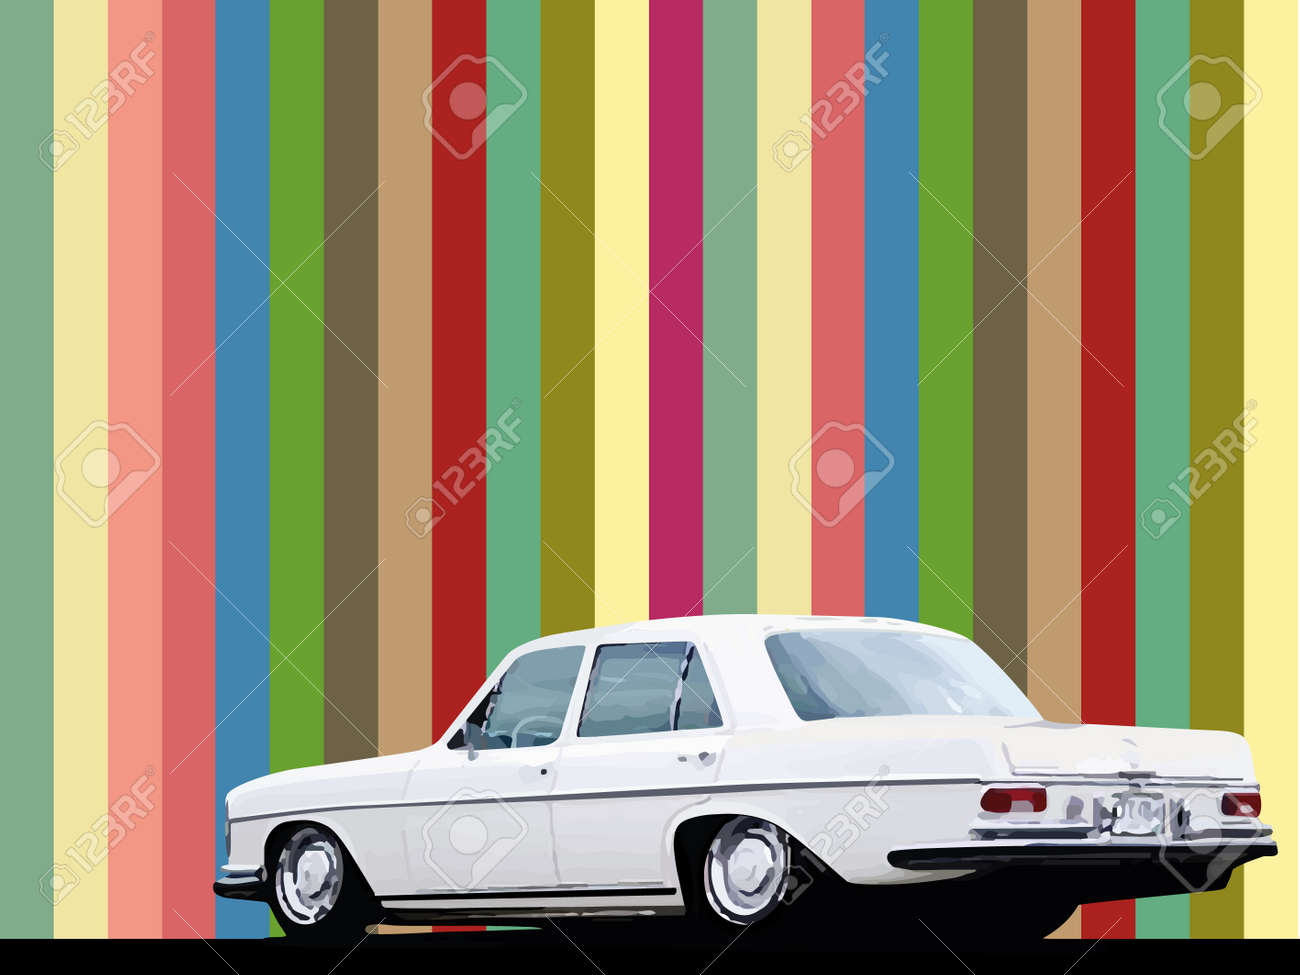 abstract background with a car - 15802568